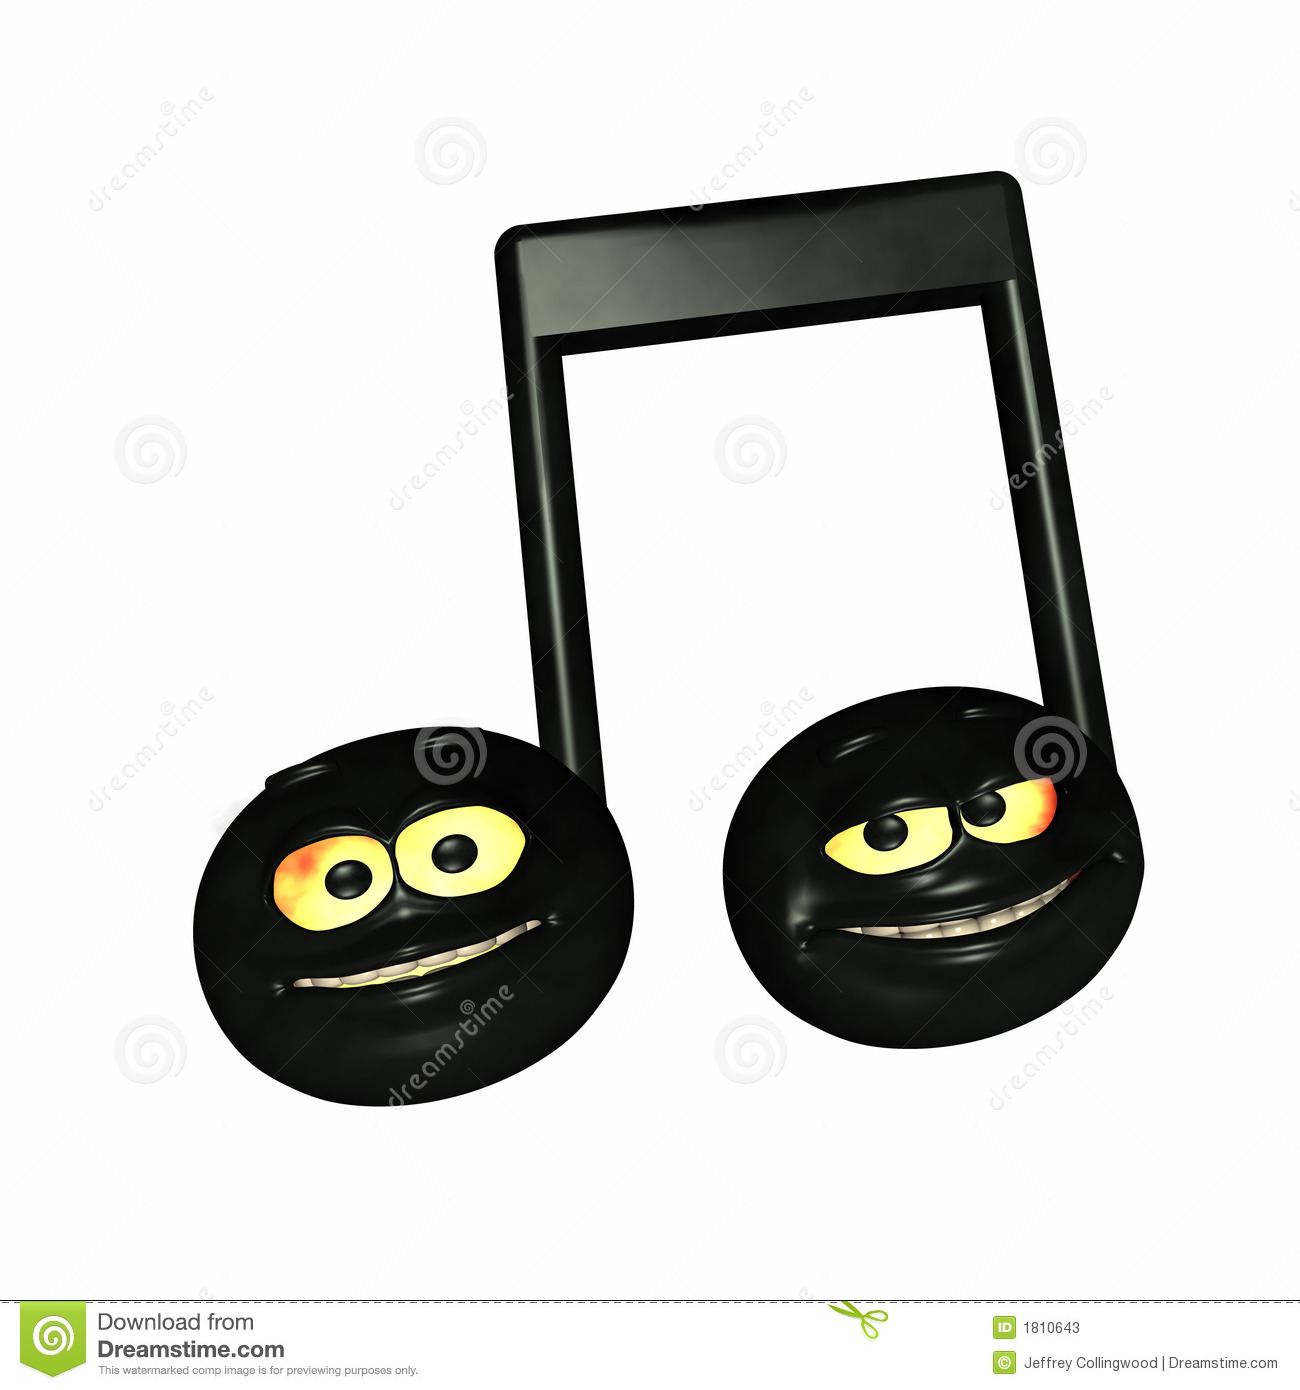 Music Smiley Stock Illustrations 1 840 Music Smiley Stock Illustrations Vectors Clipart Dreamstime